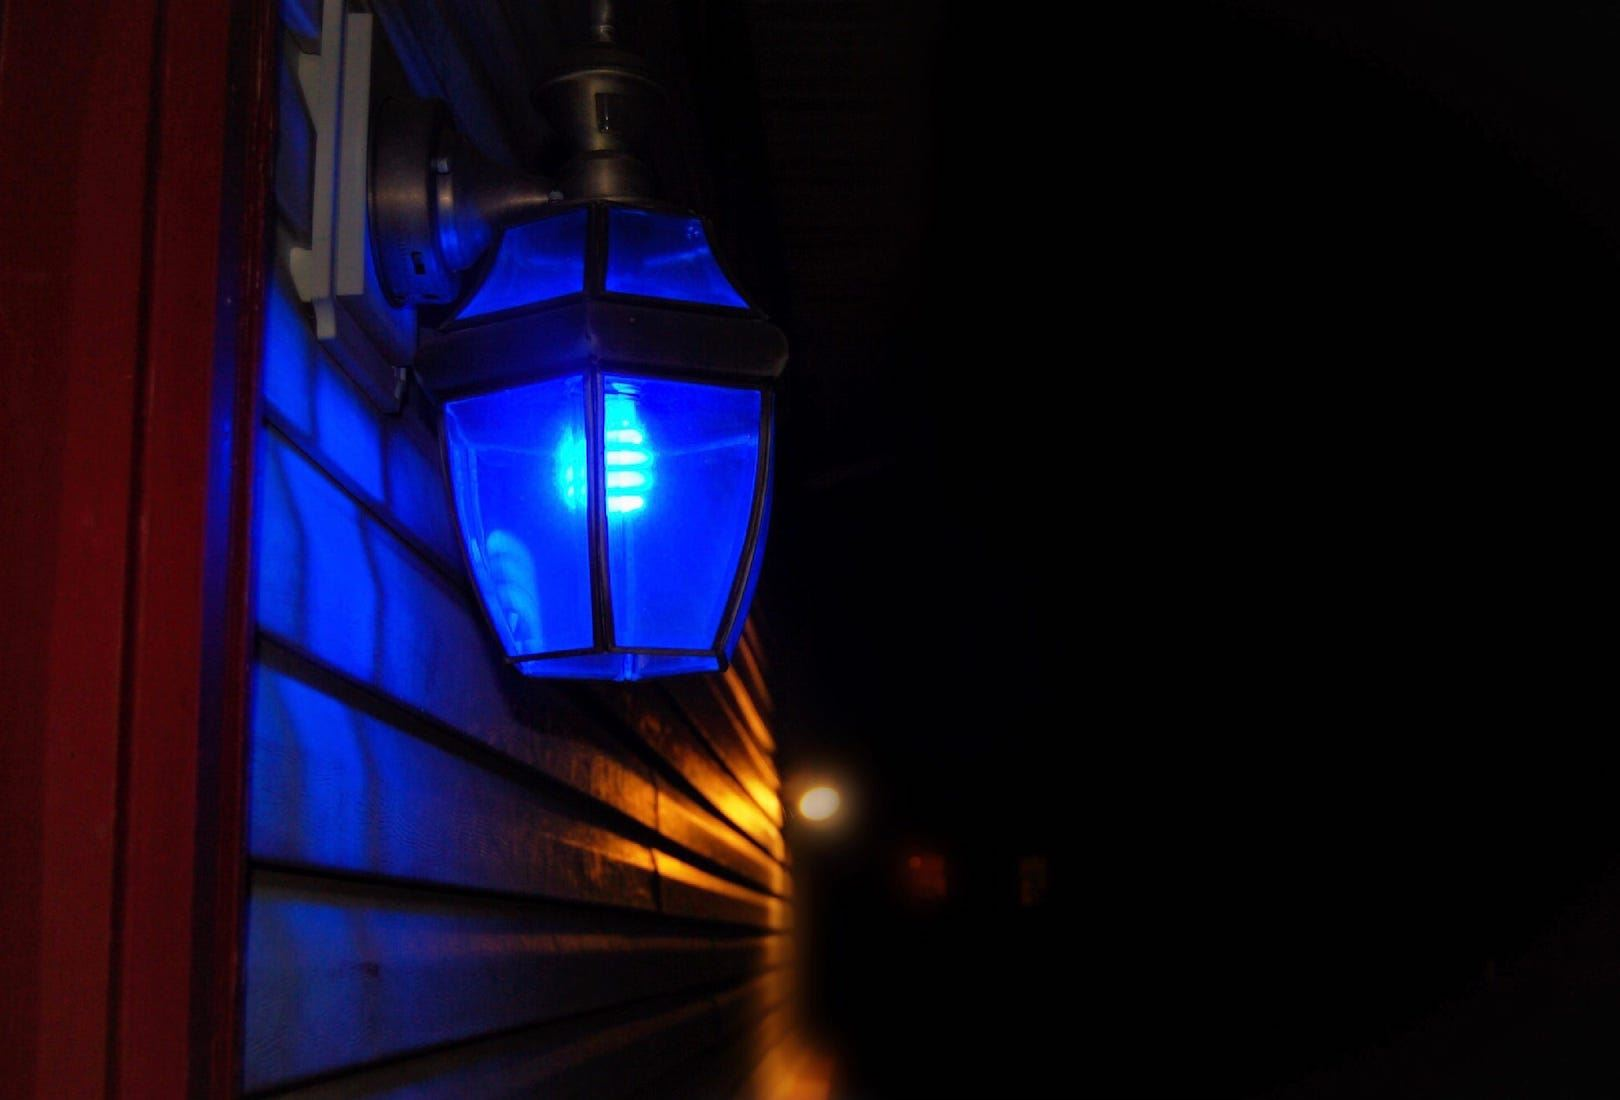 A blue porch light honors law enforcement officers during May.